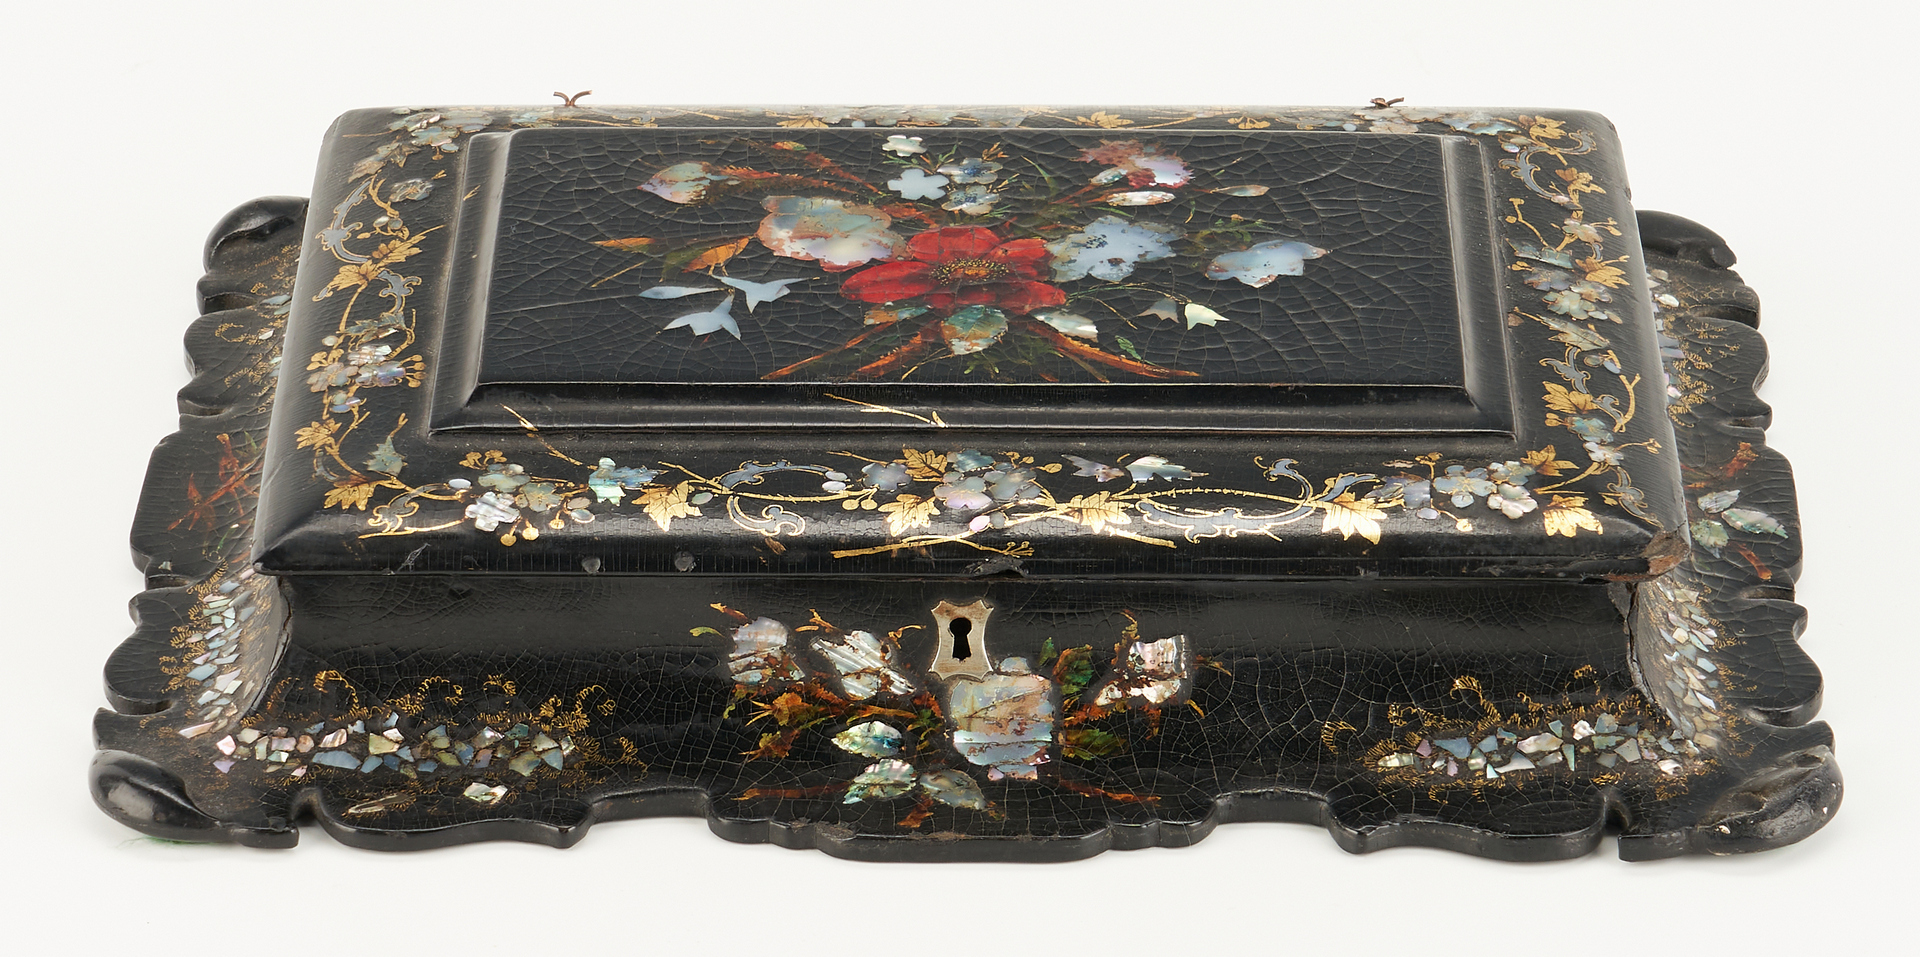 Lot 300: Hand Painted European Fan & Paper Mache Box